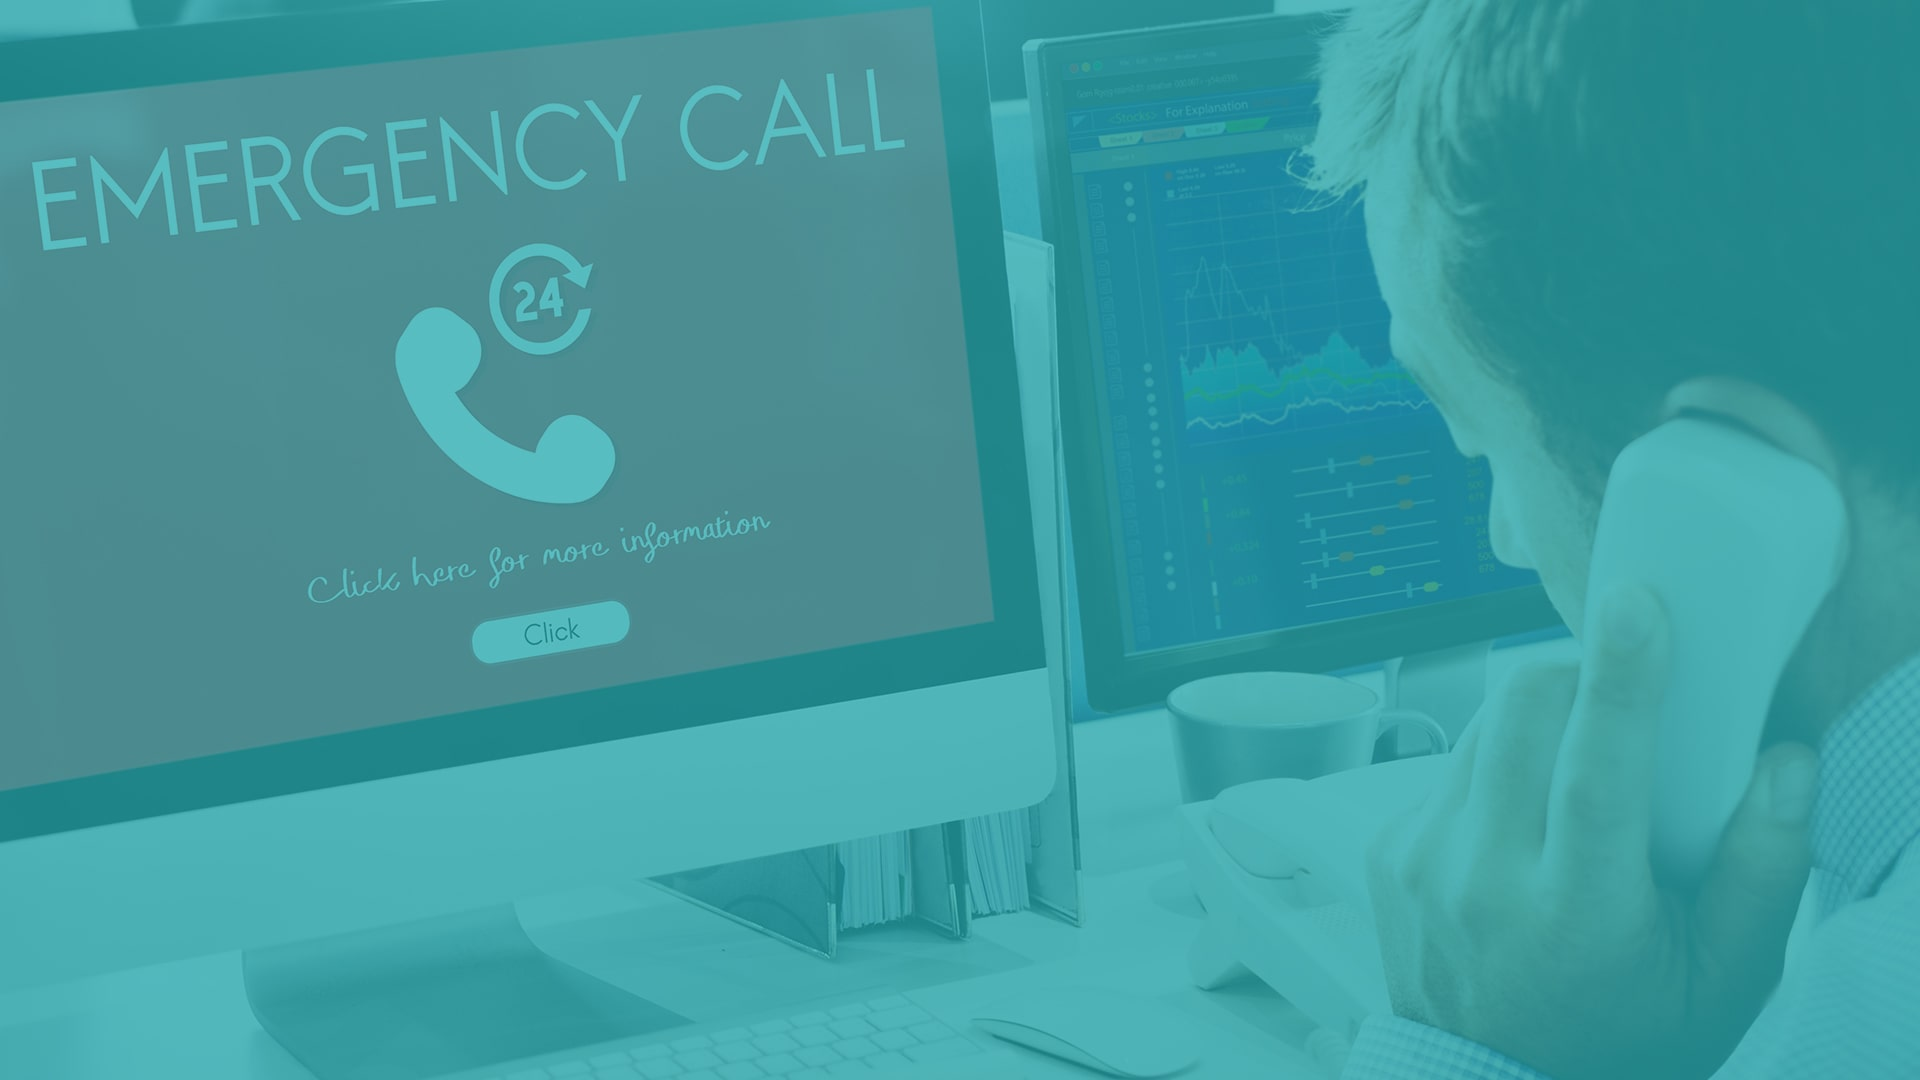 Trends in Emergency Communications Market